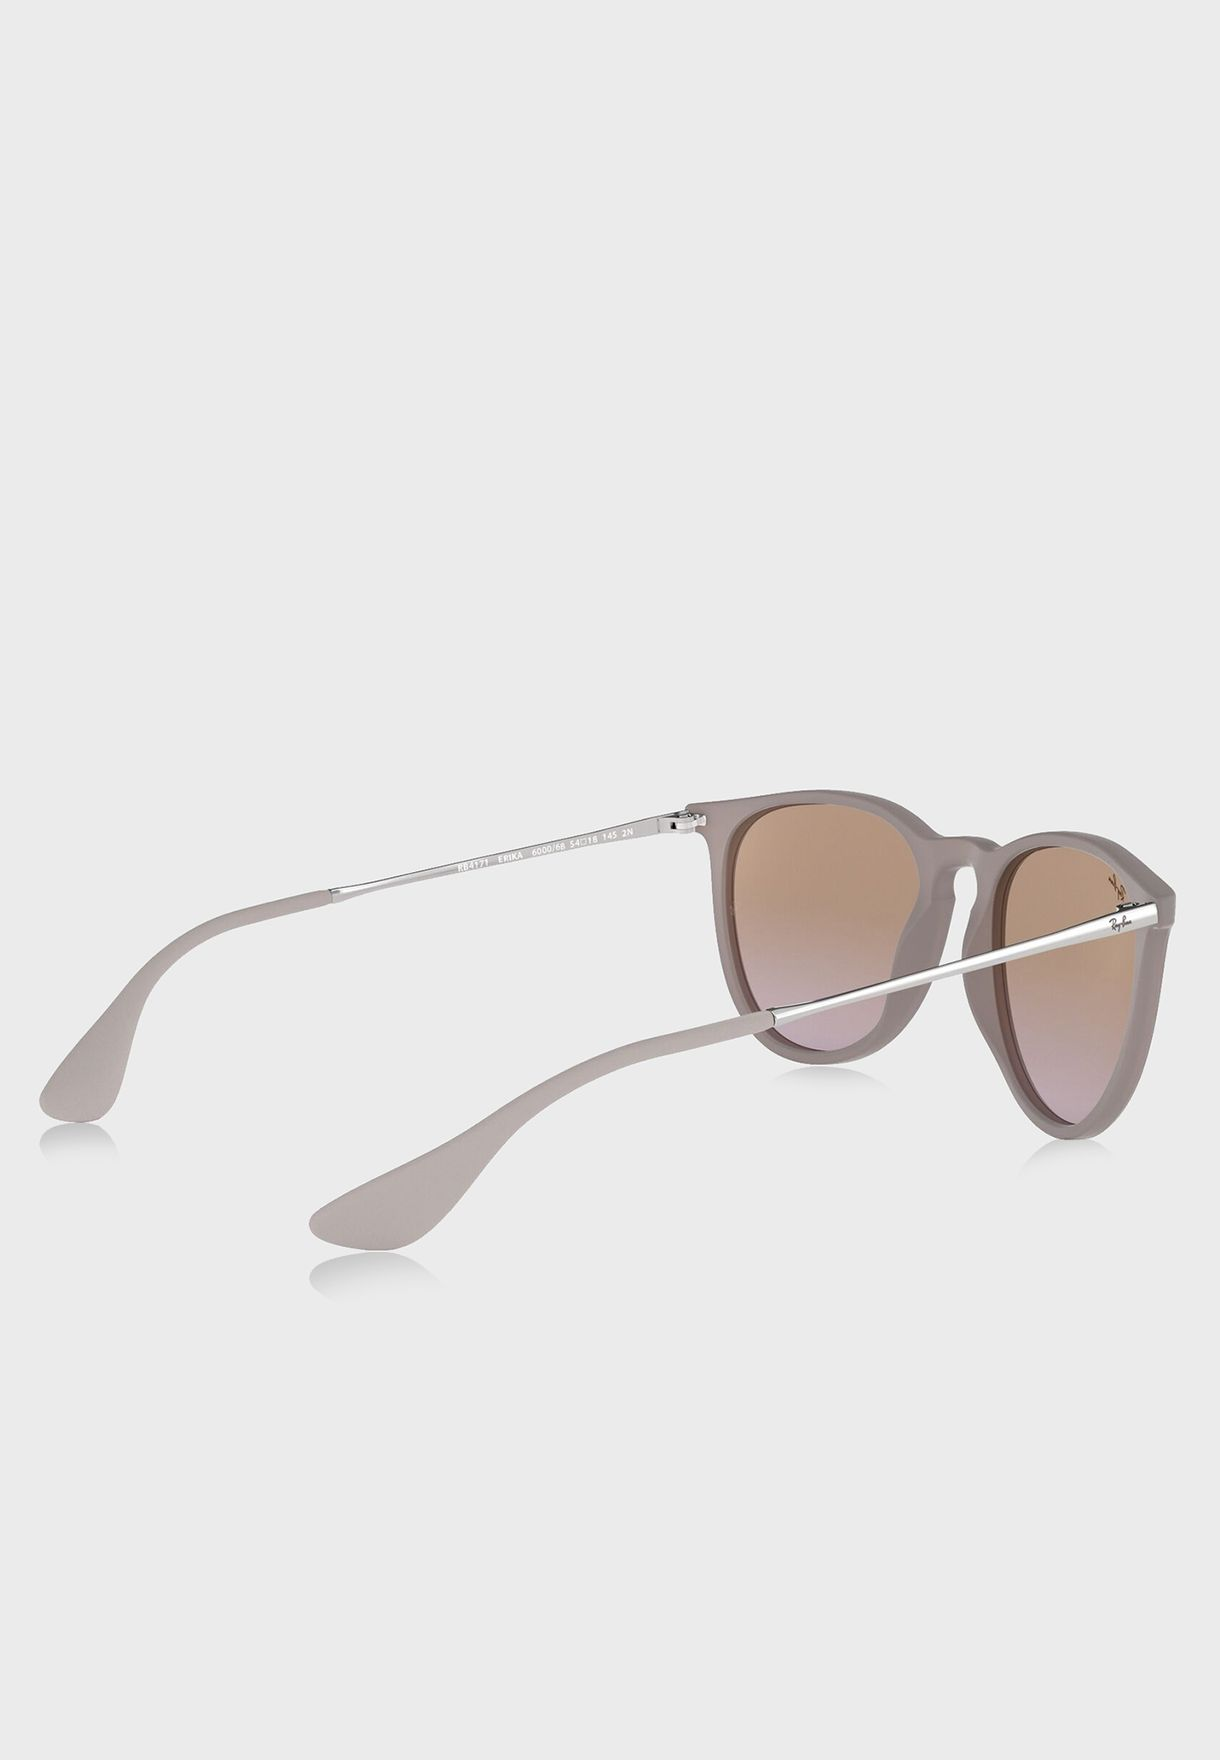 0RB4171 Erika-Piloto Sunglasses